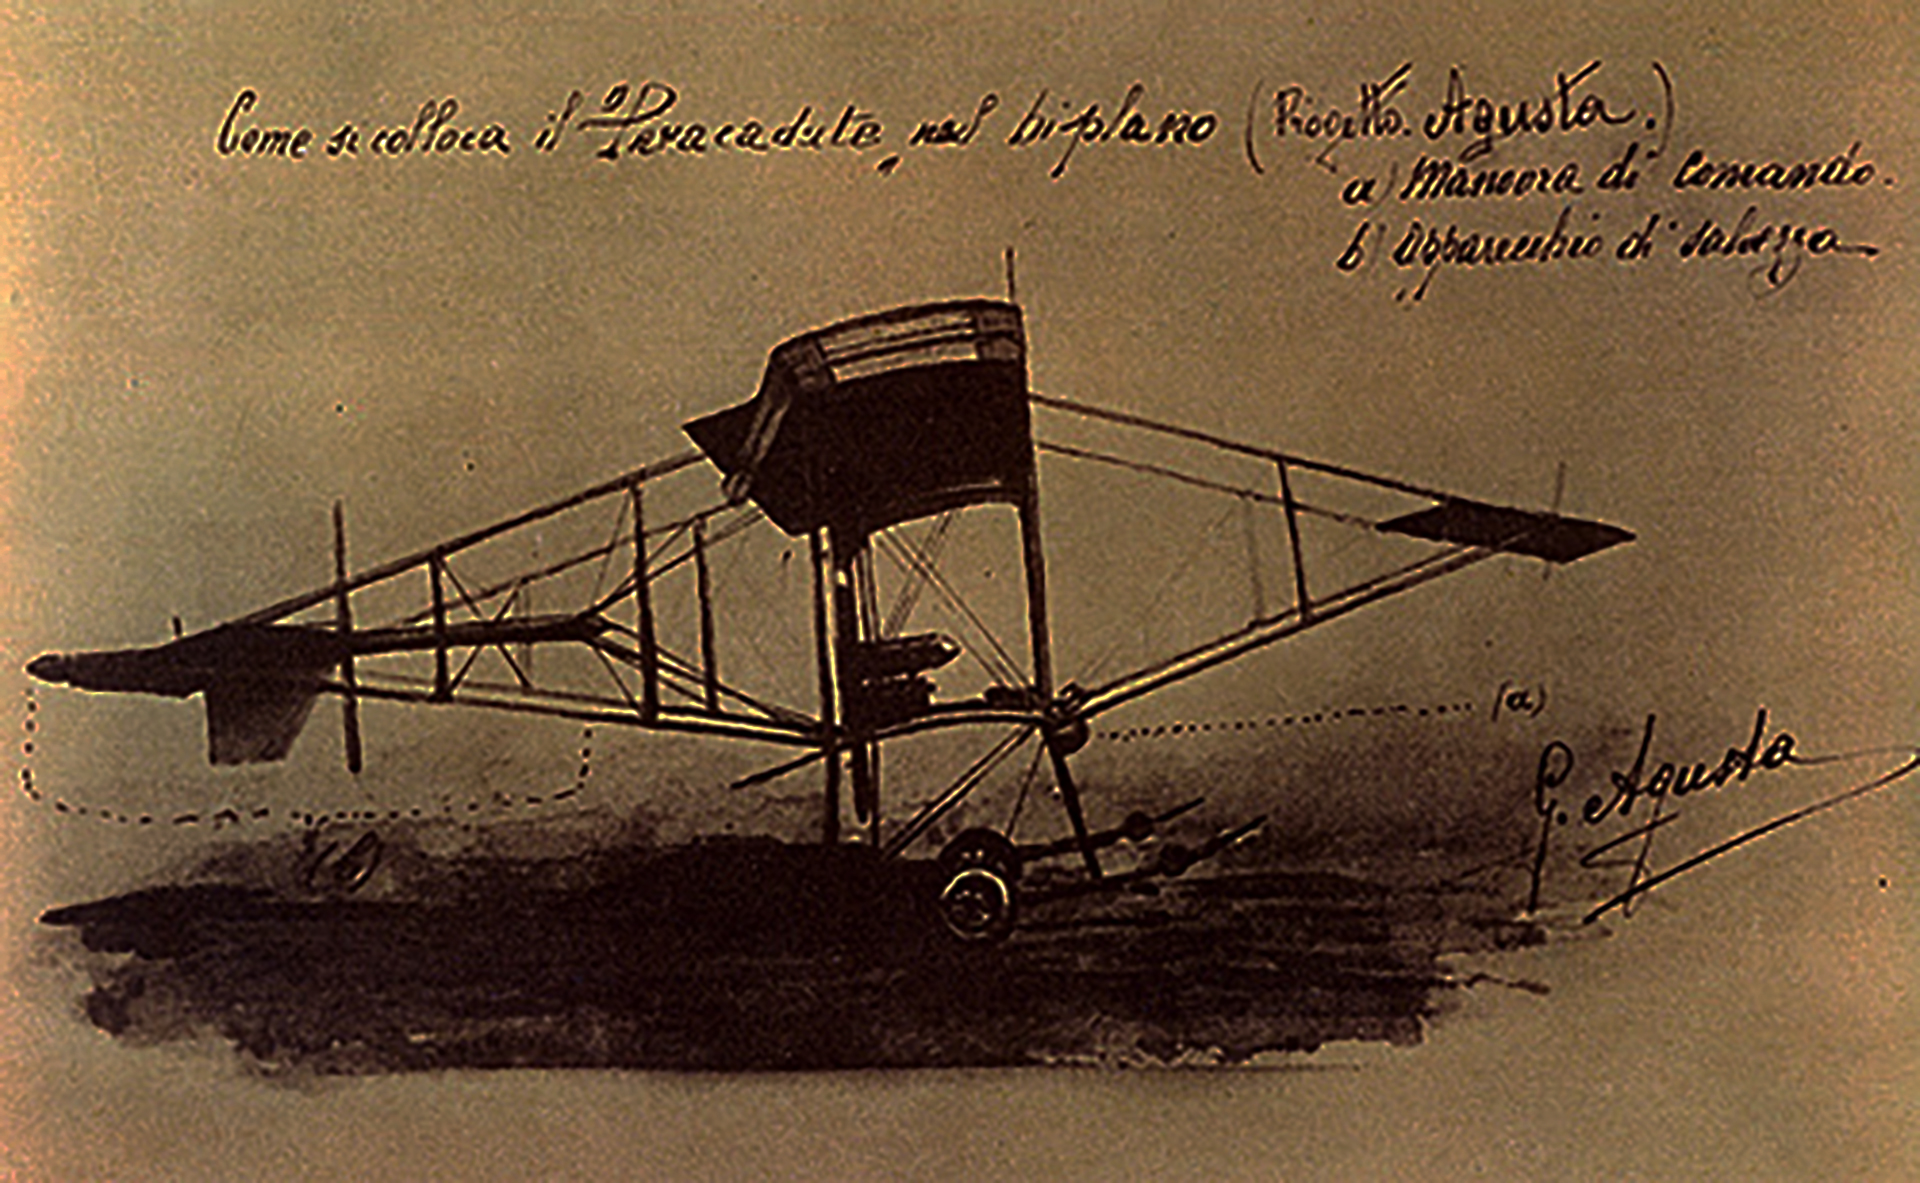 AG1 plane by Giovanni-Agusta - 1907 - drawing design-heritage via museoweb it